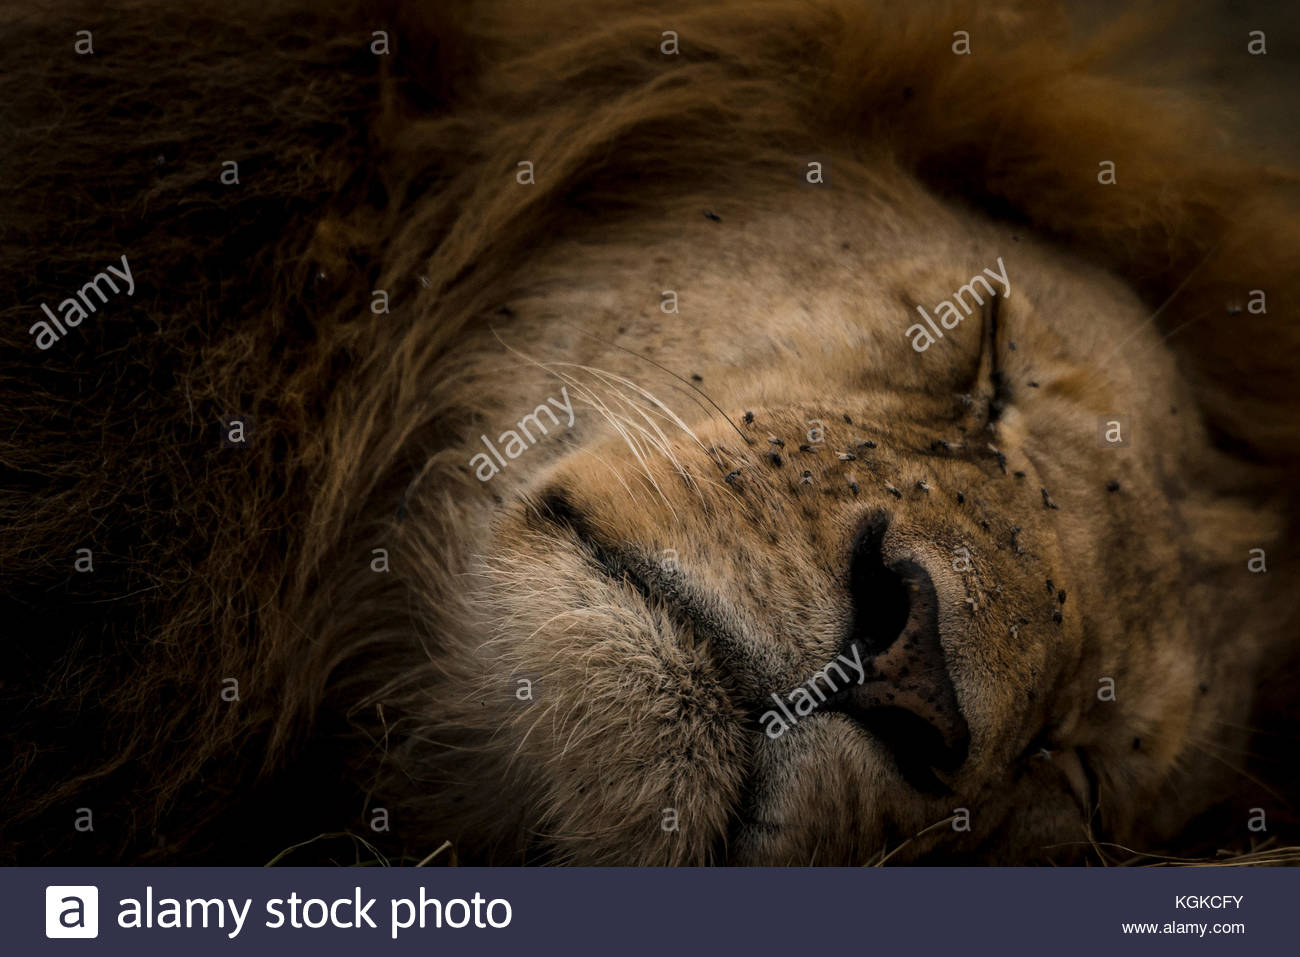 Portrait of a sleepy lion, Panthera leo, in Masai Mara National Reserve. - Stock Image